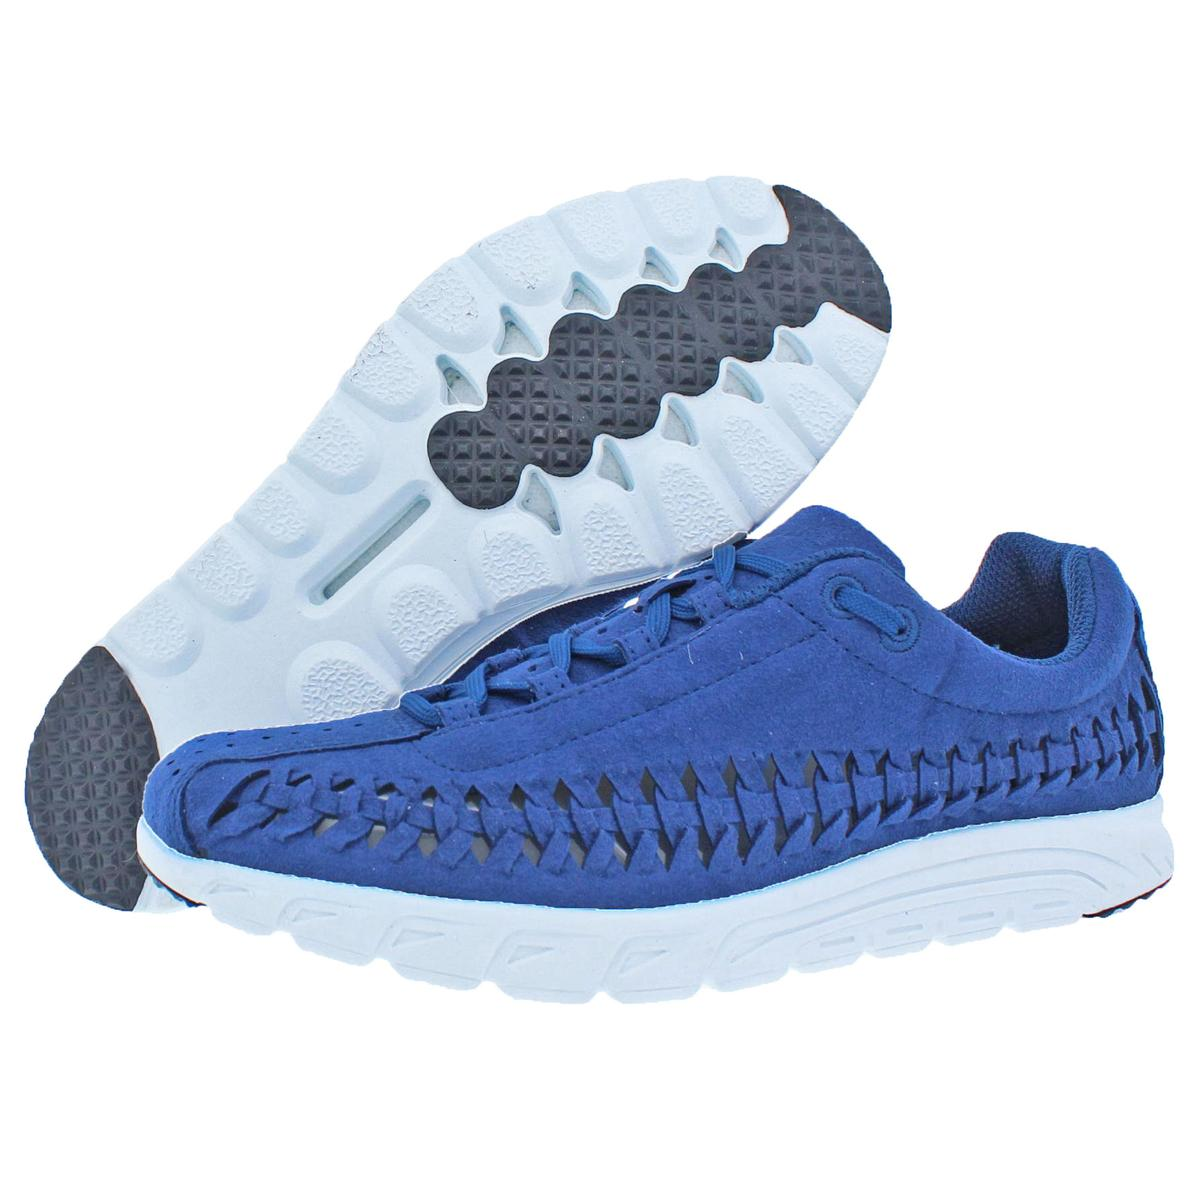 Nike-Mens-Mayfly-Woven-Suede-Woven-Training-Fashion-Sneakers-Shoes-BHFO-2898 thumbnail 10